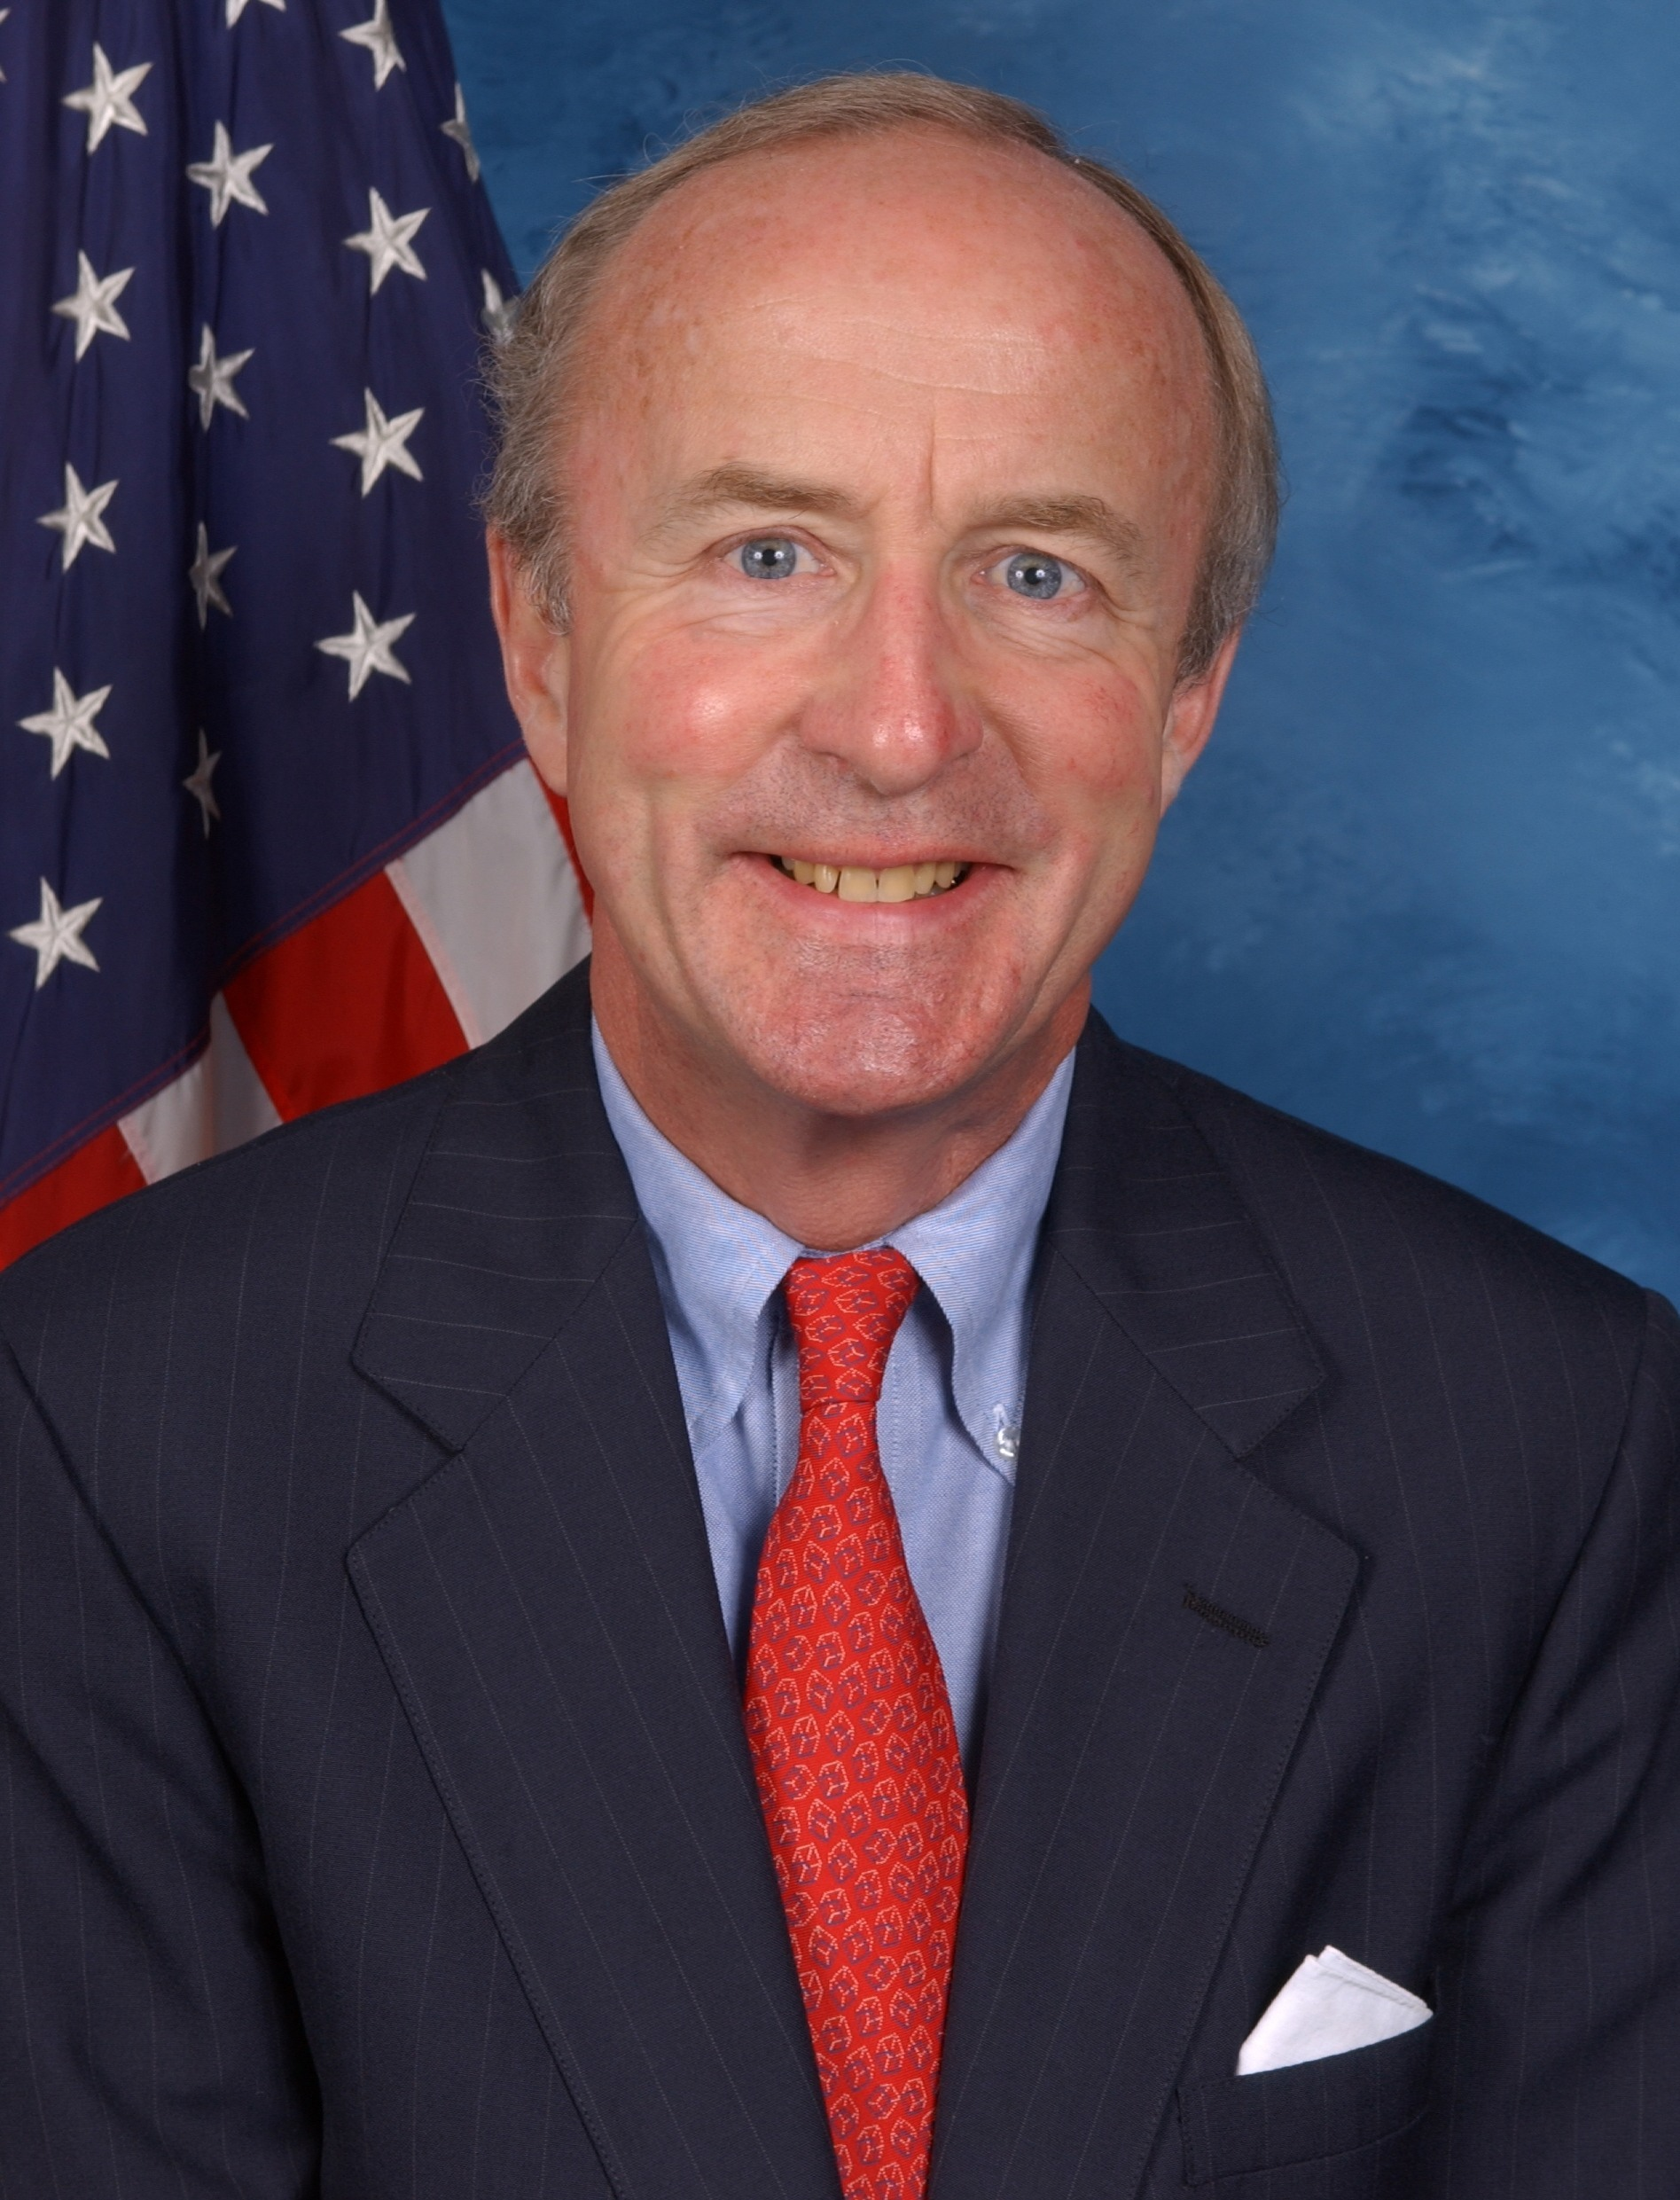 523d6b55593c62d93d8d_Rodney_Frelinghuysen__official_photo_portrait__color.jpg